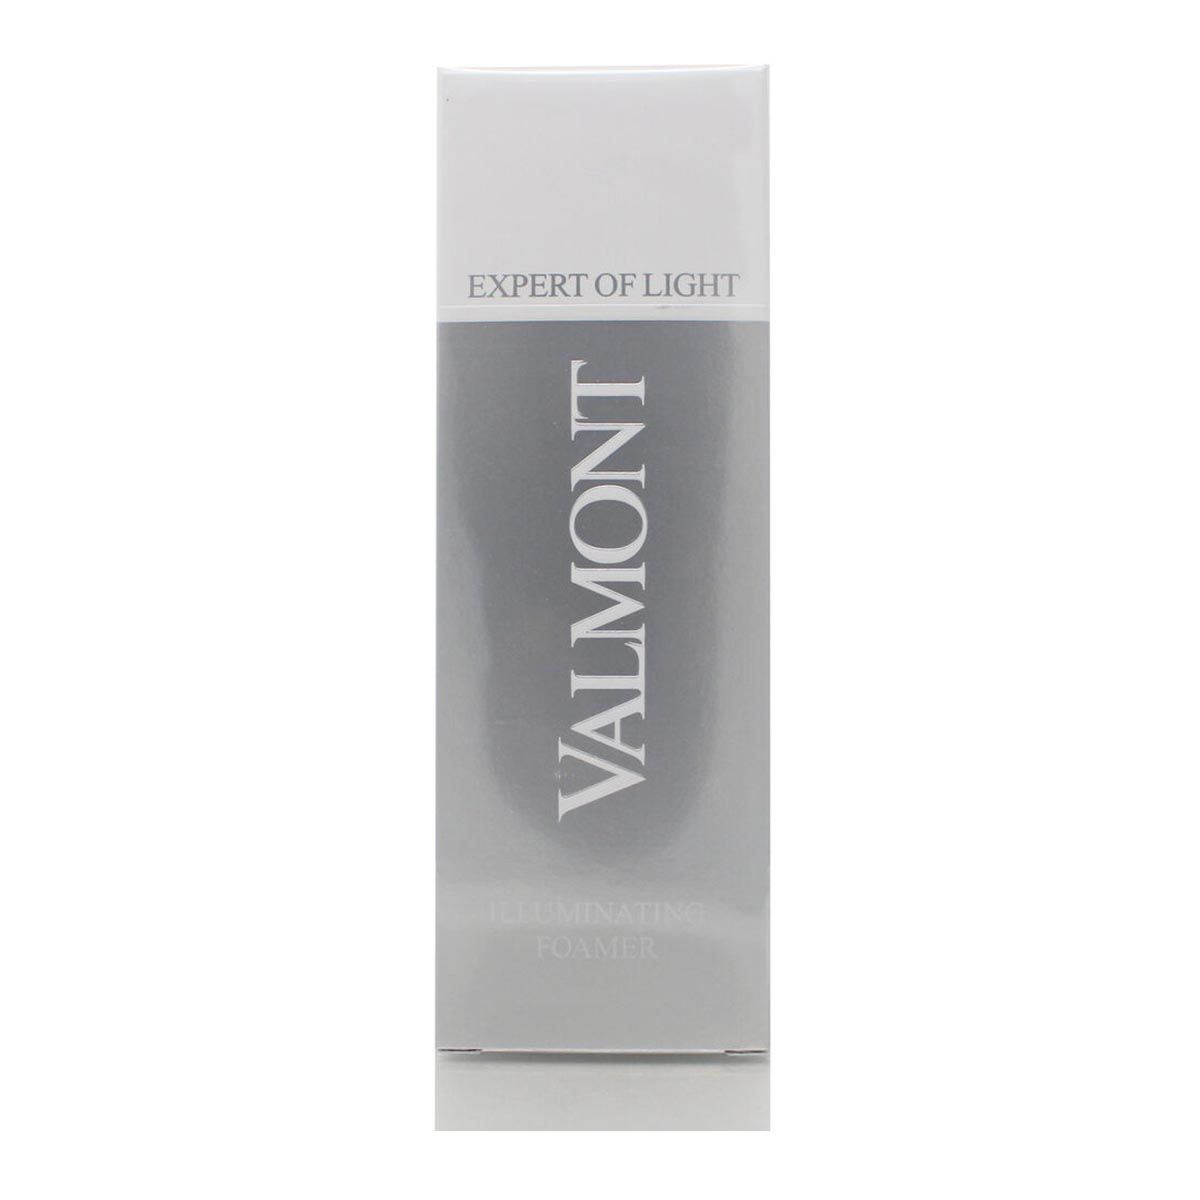 Valmont expert of light illuminating foamer 100ml